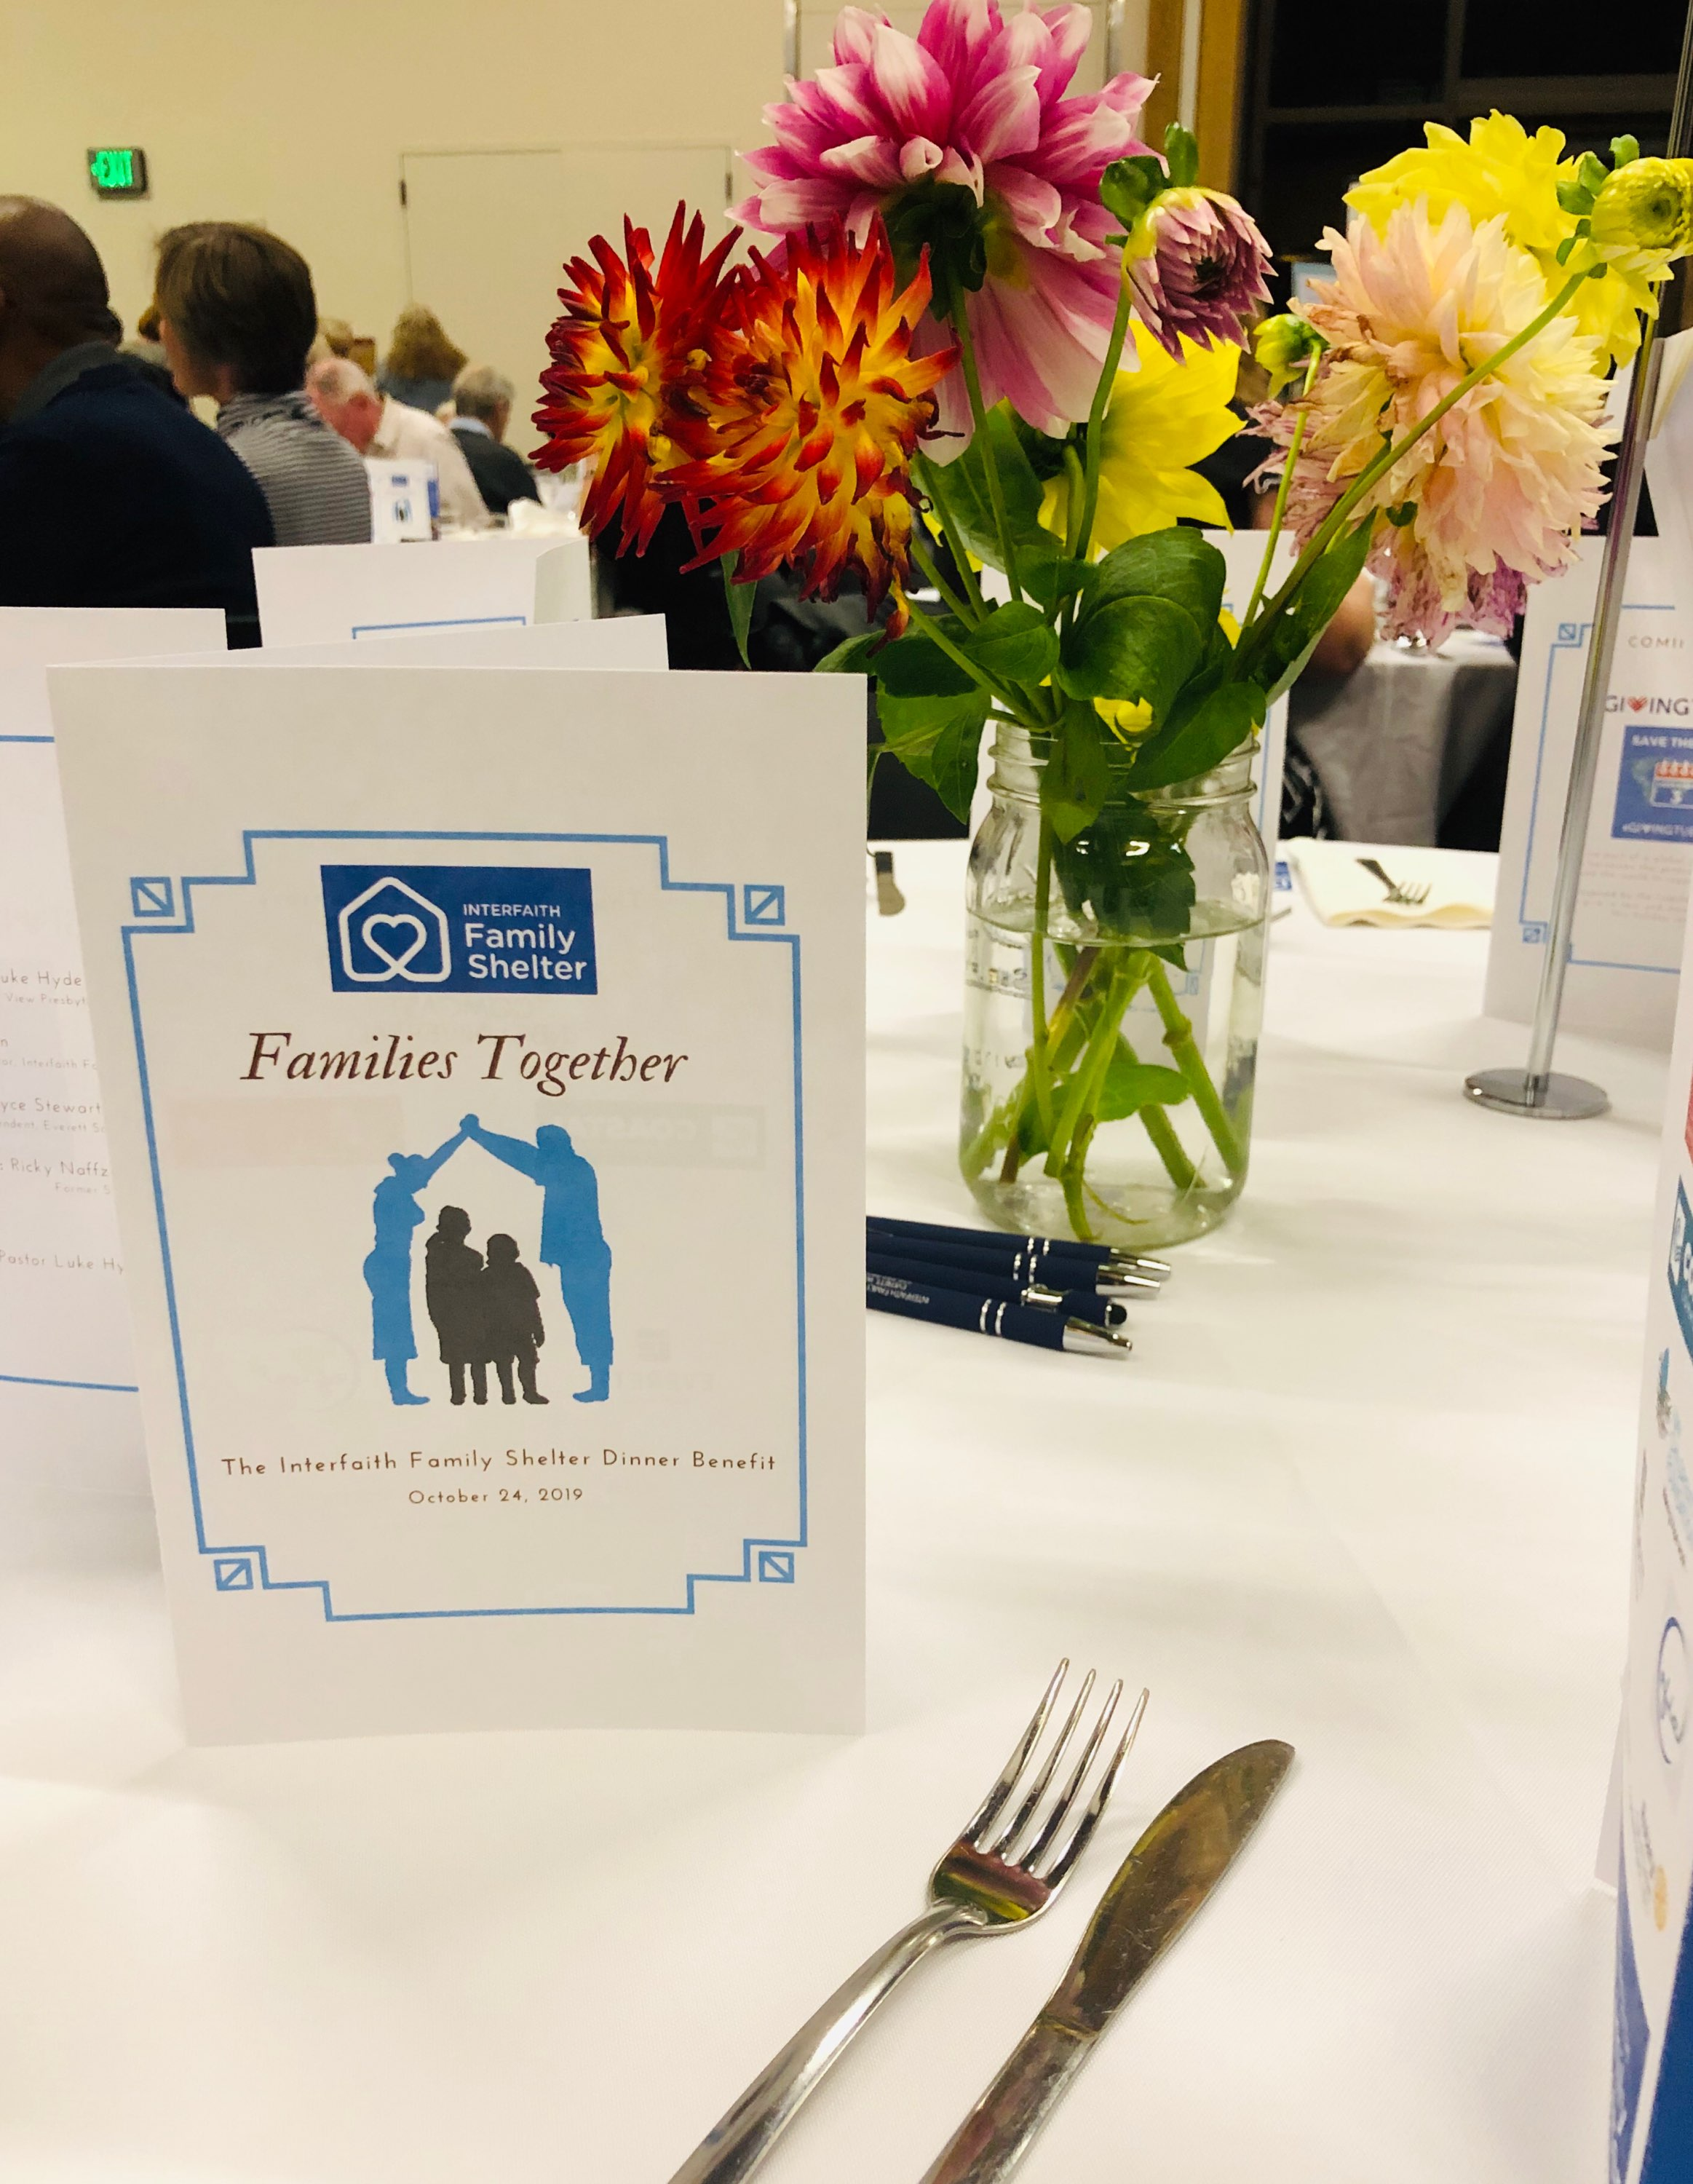 The 2019 Families Together Benefit Dinner